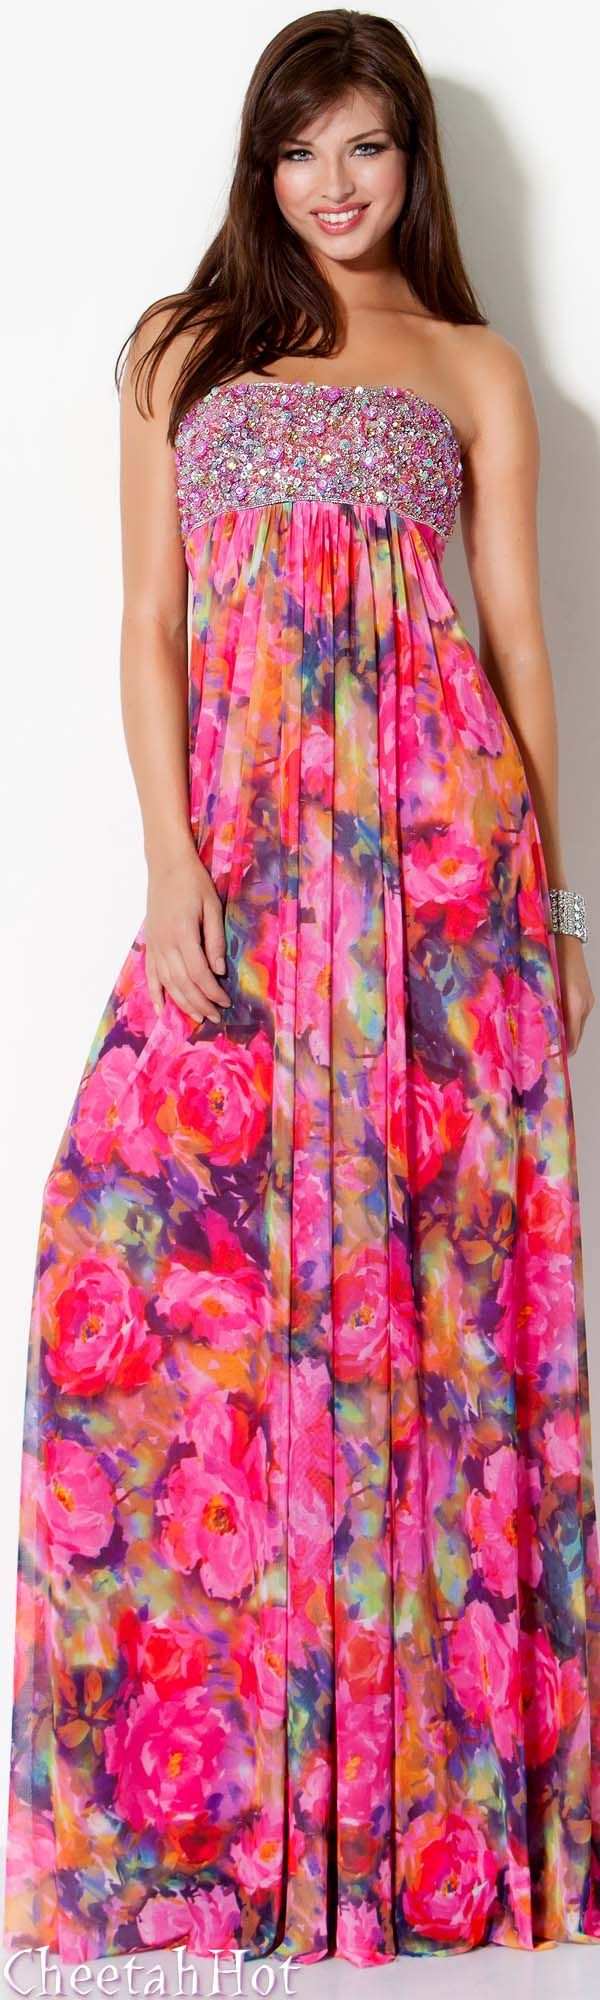 JOVANI - Authentic Designer Dress - Colorful Bejeweled Gown ...